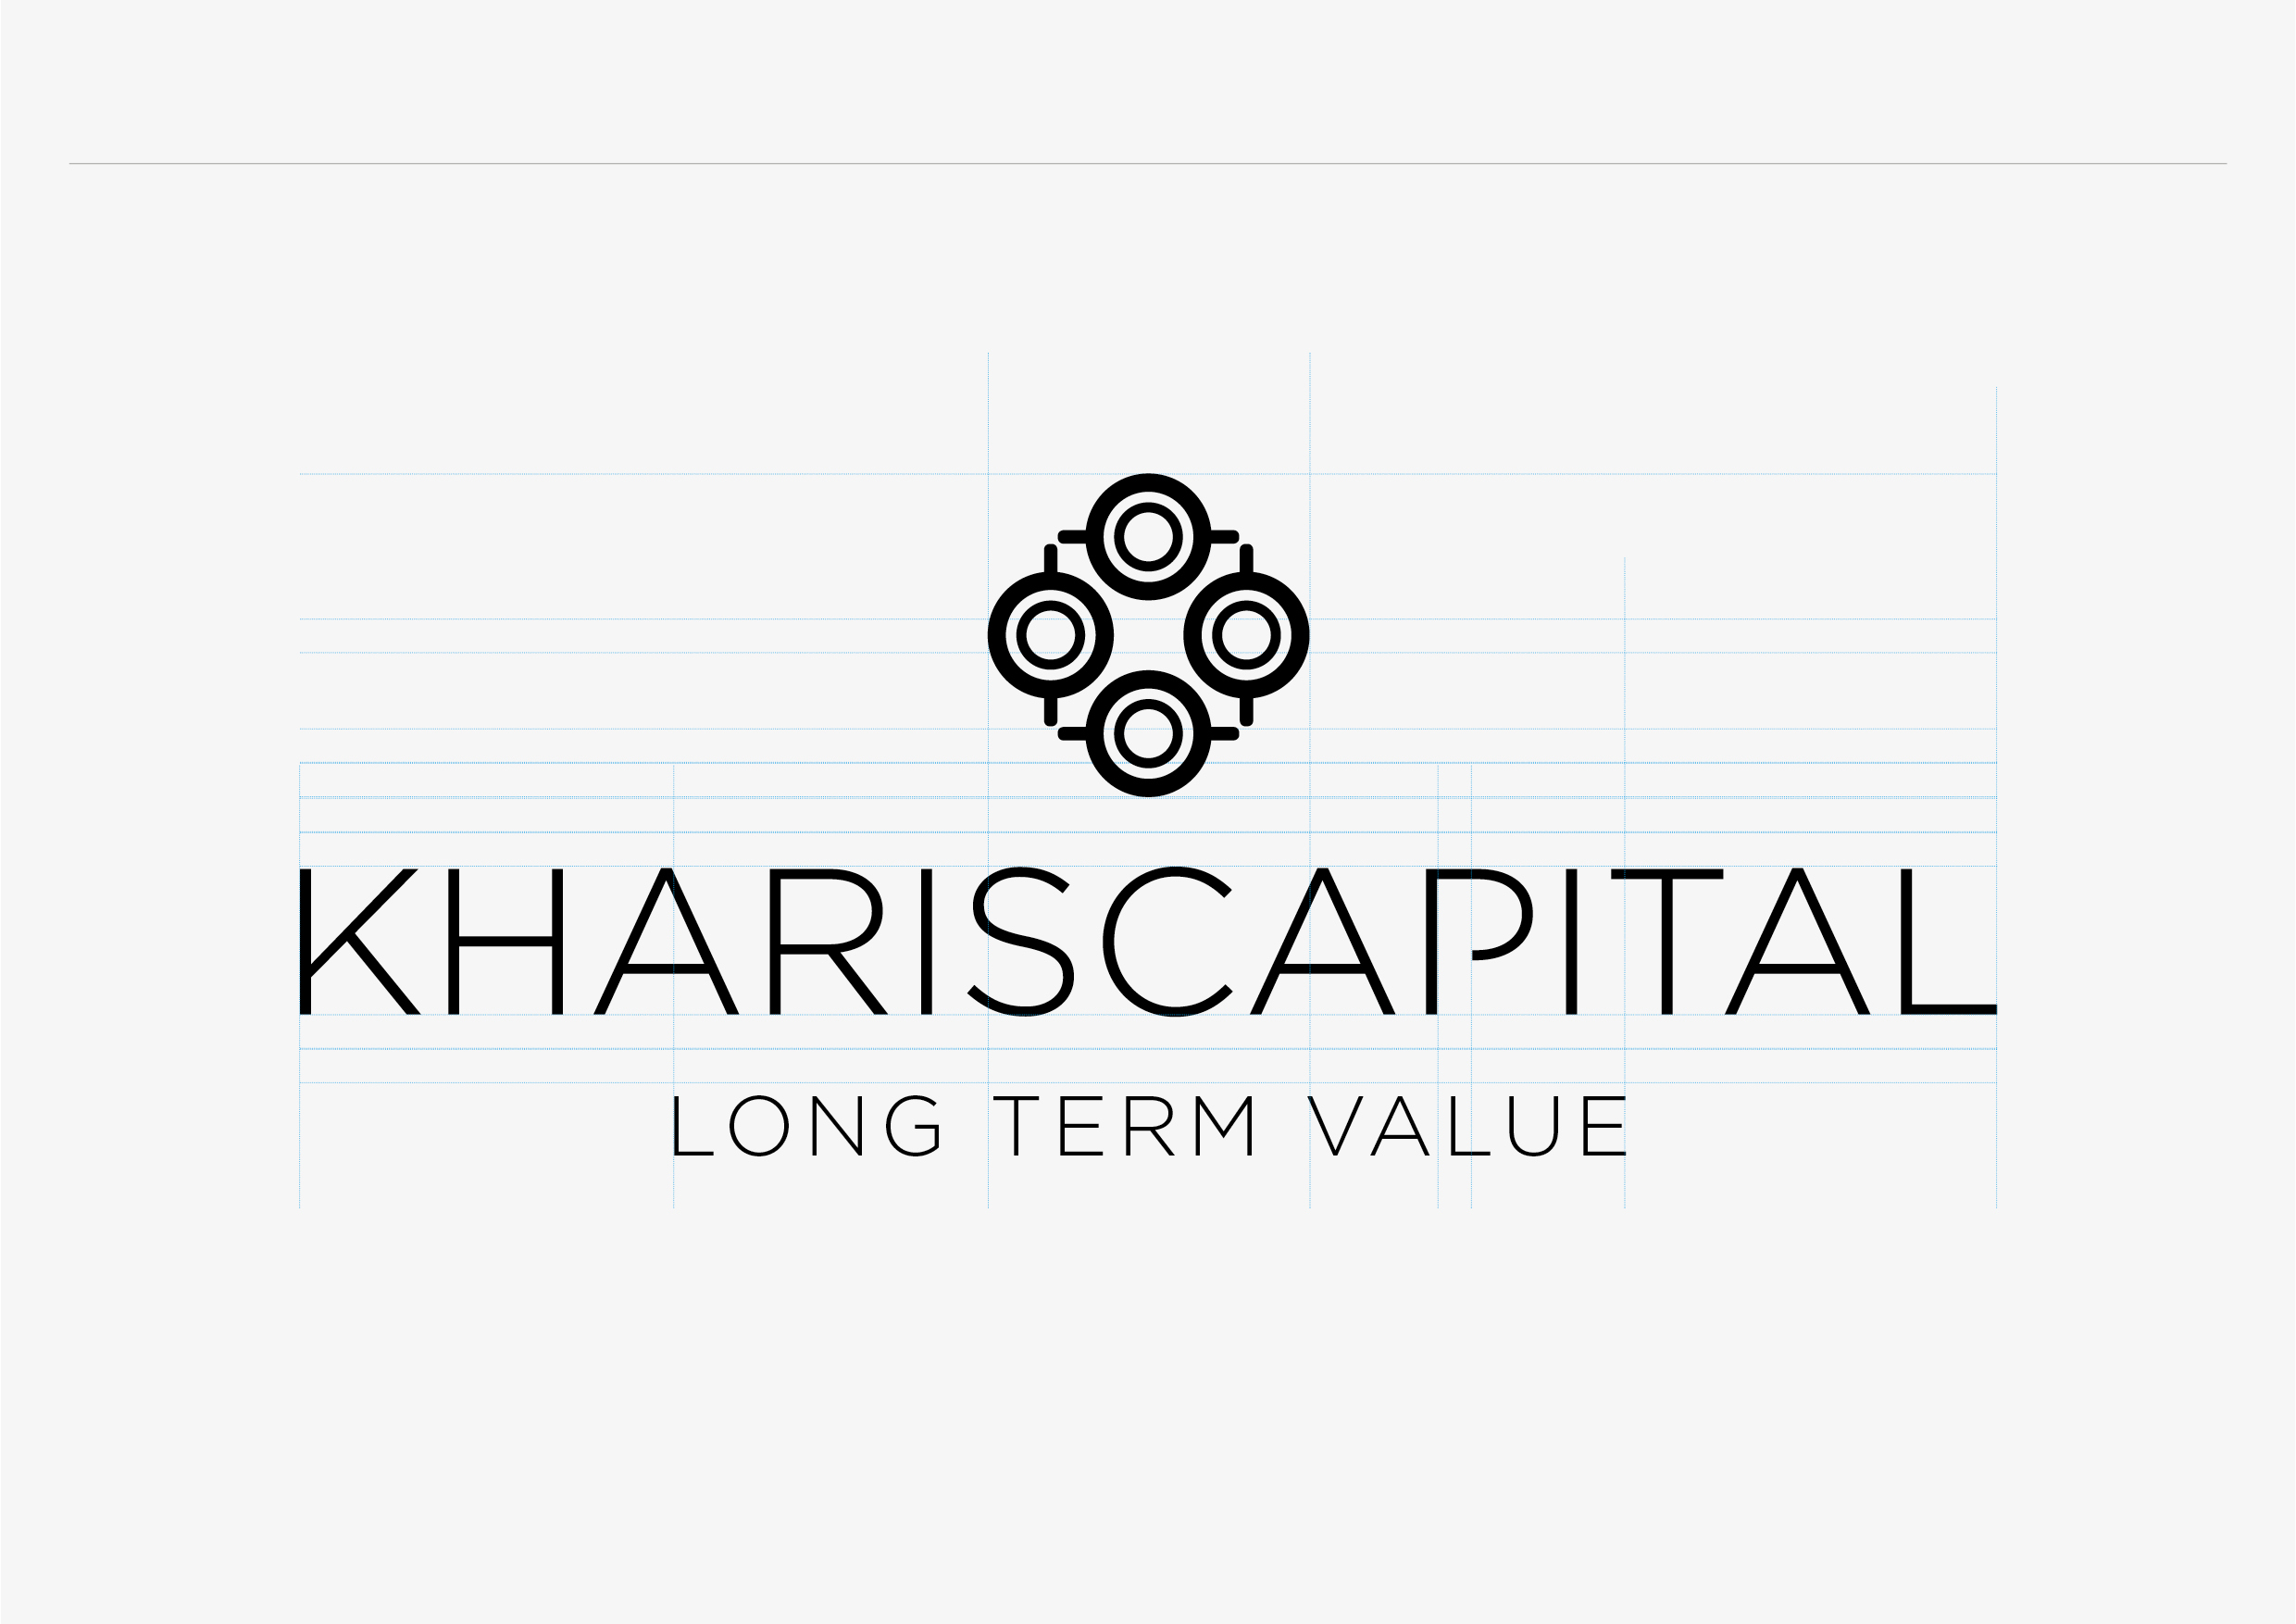 141124 KHARIS CAPITAL v01 construction grey4